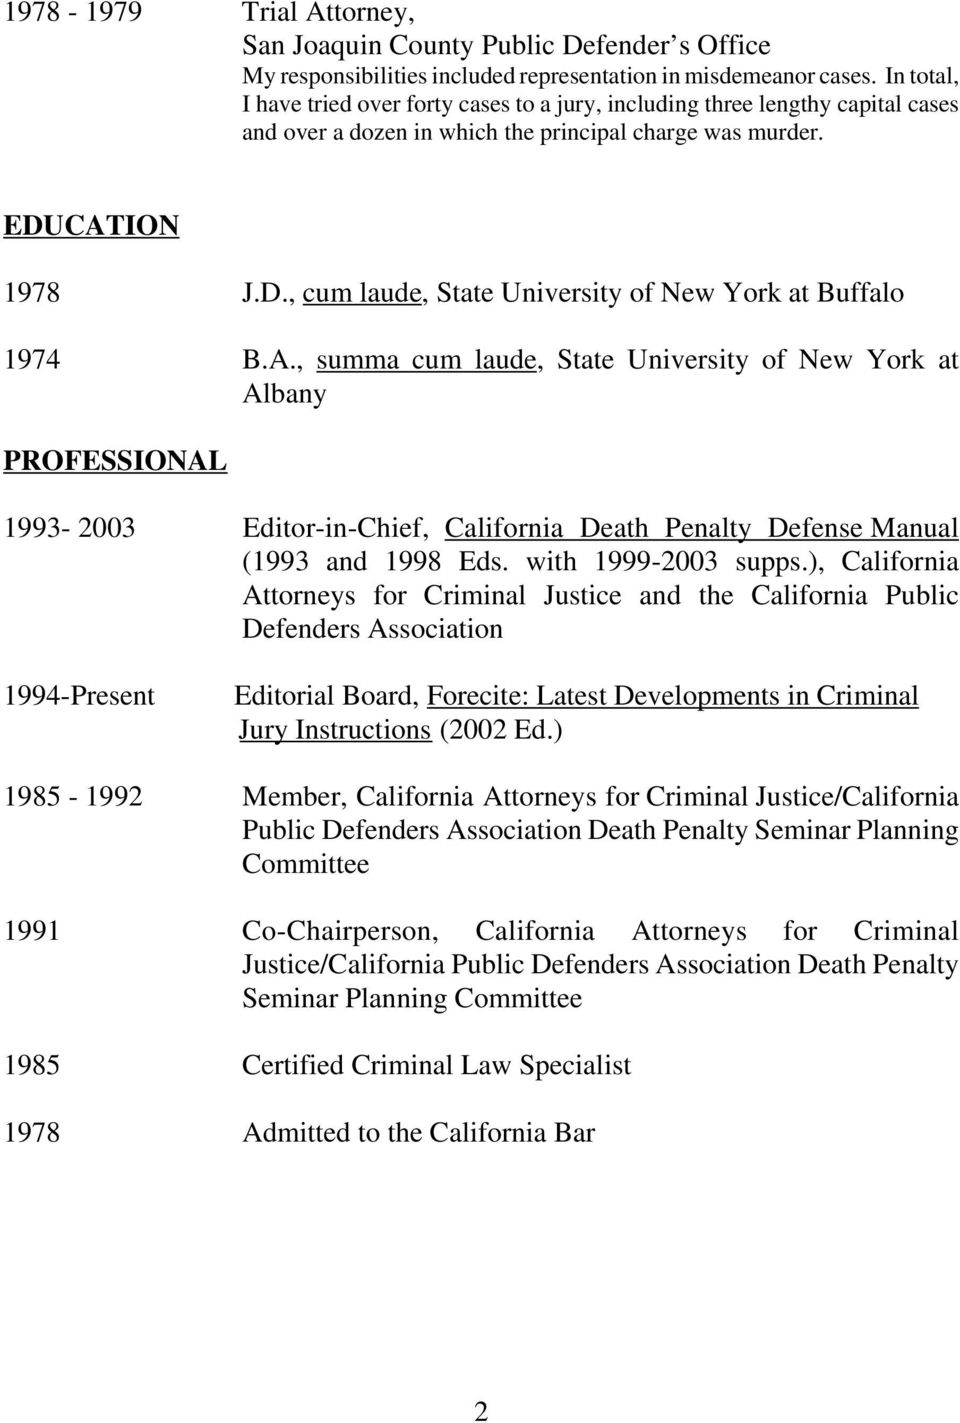 CATION 1978 1974 J.D., cum laude, State University of New York at Buffalo B.A., summa cum laude, State University of New York at Albany PROFESSIONAL 1993-2003 1994-Present 1985-1992 1991 1985 1978 Editor-in-Chief, California Death Penalty Defense Manual (1993 and 1998 Eds.